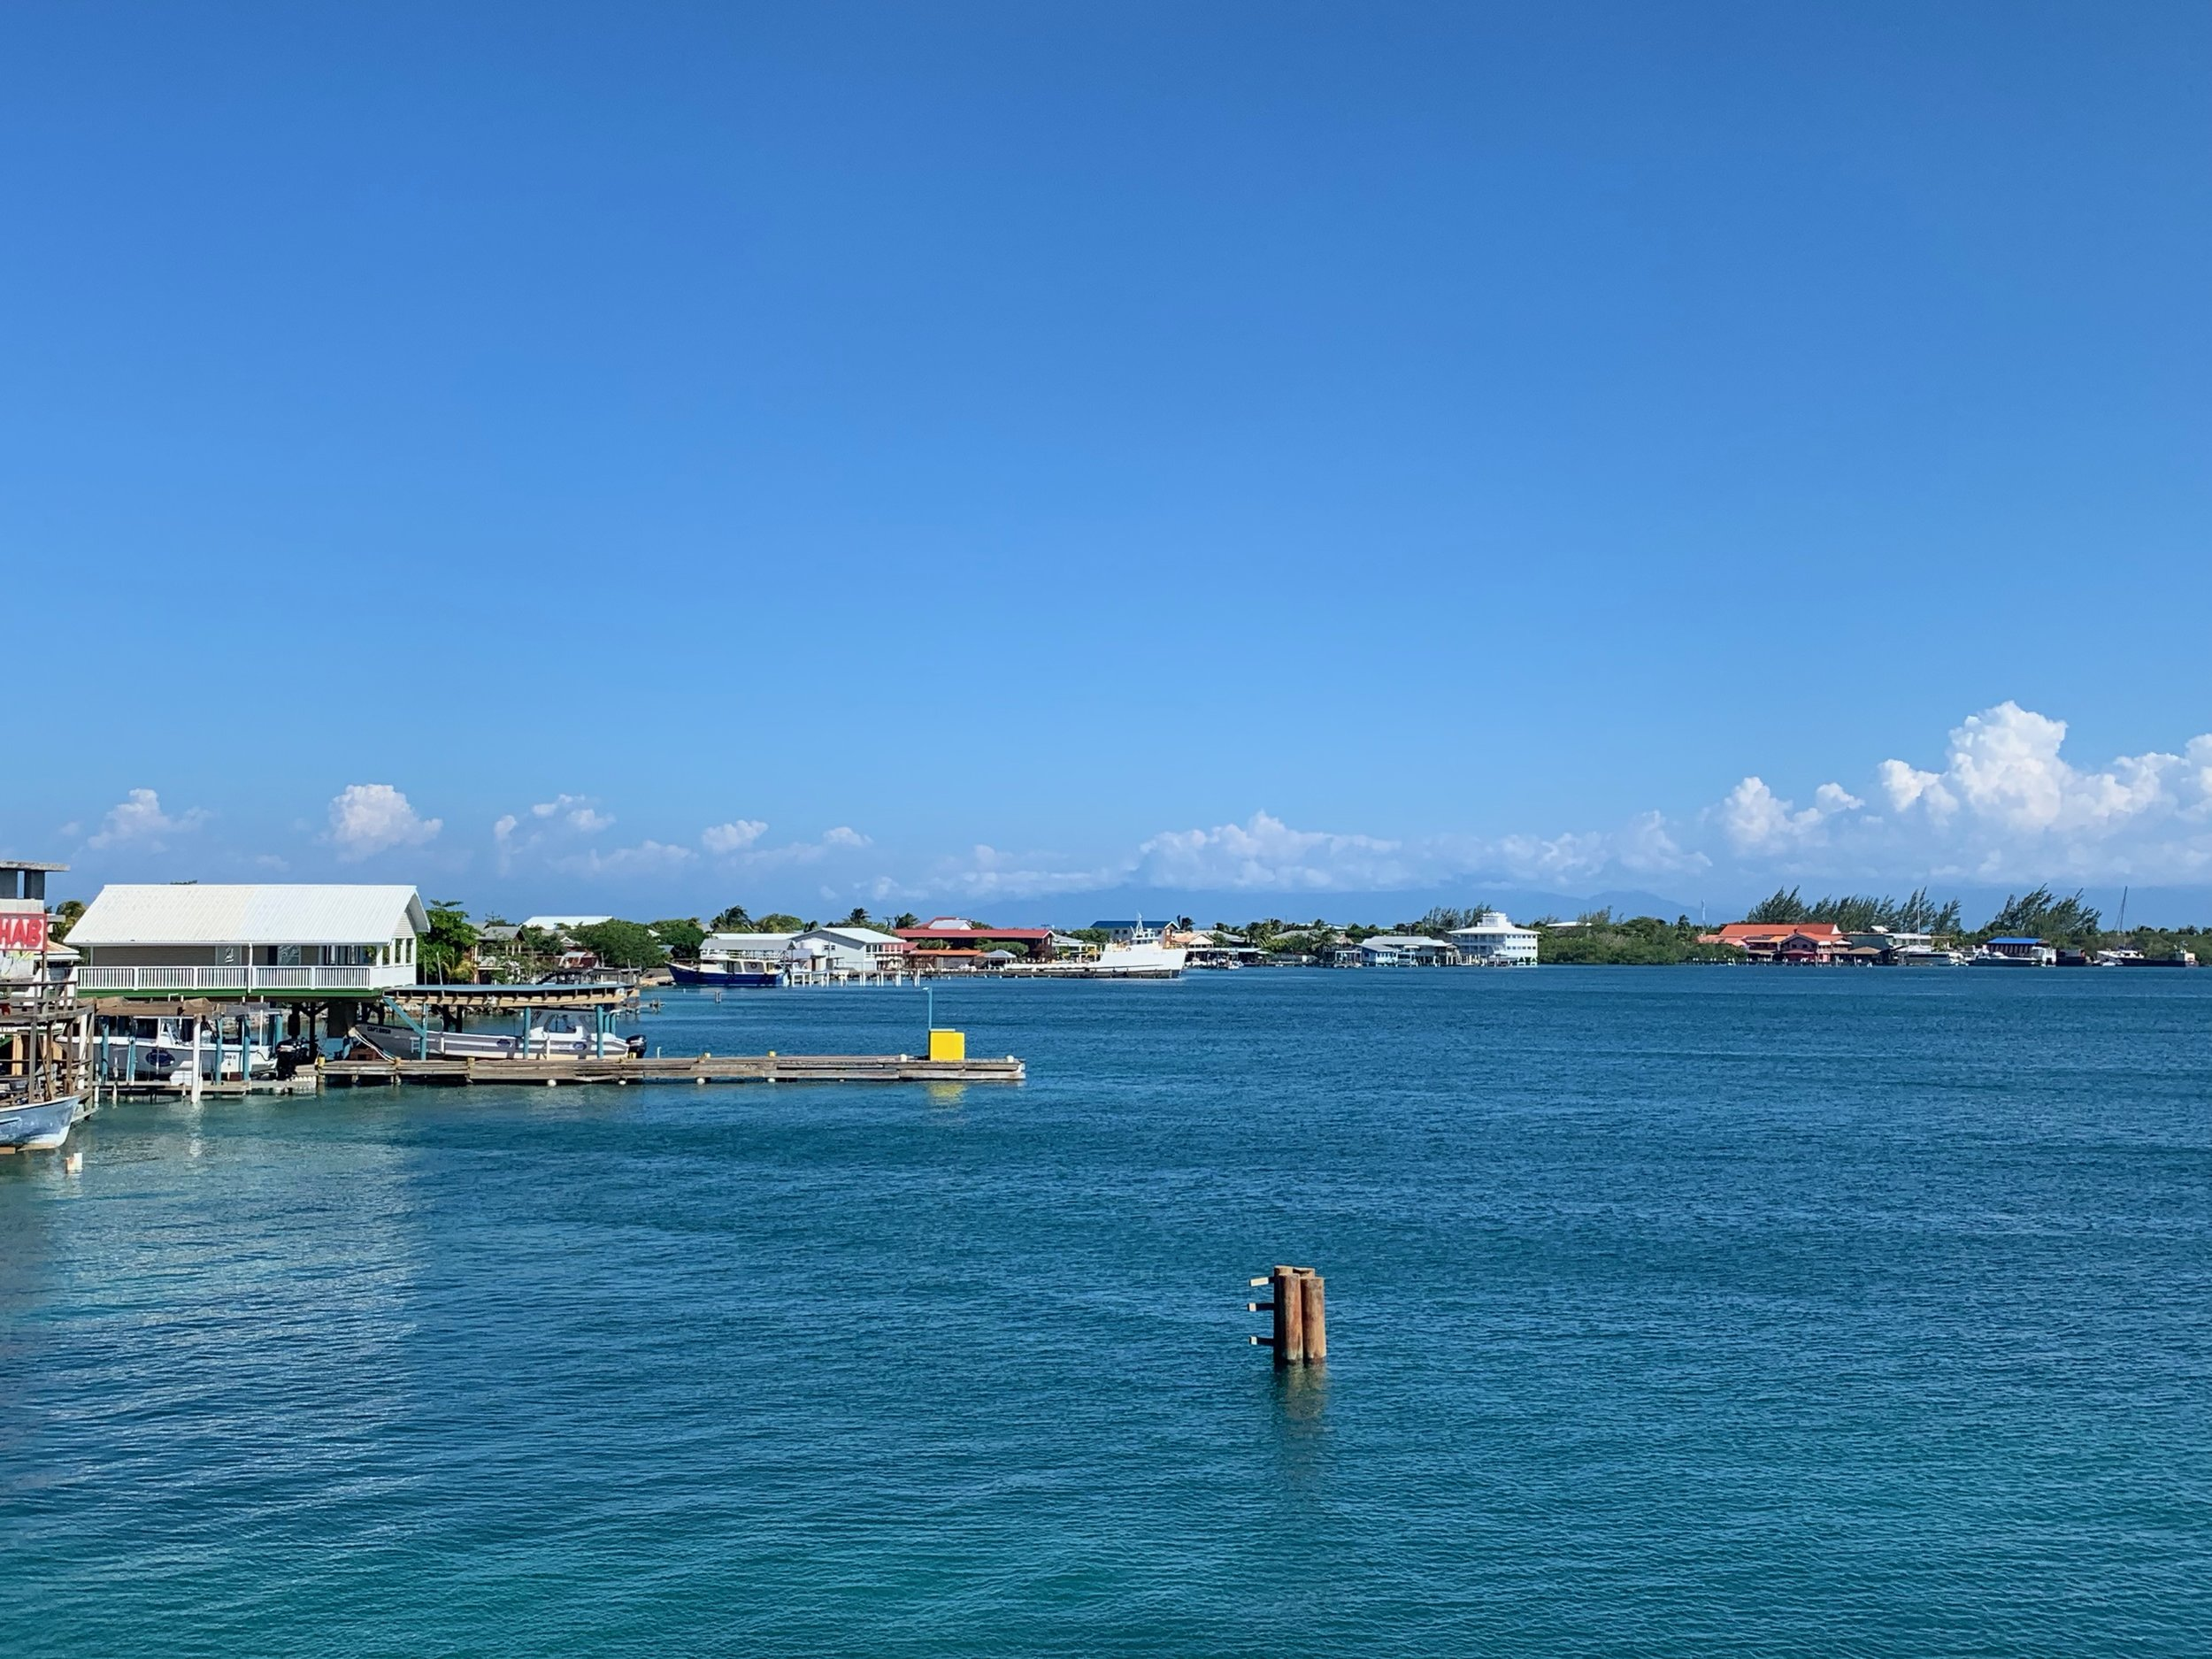 View from the dock of Utila, Honduras; the ship decks of the dive centers lining the water